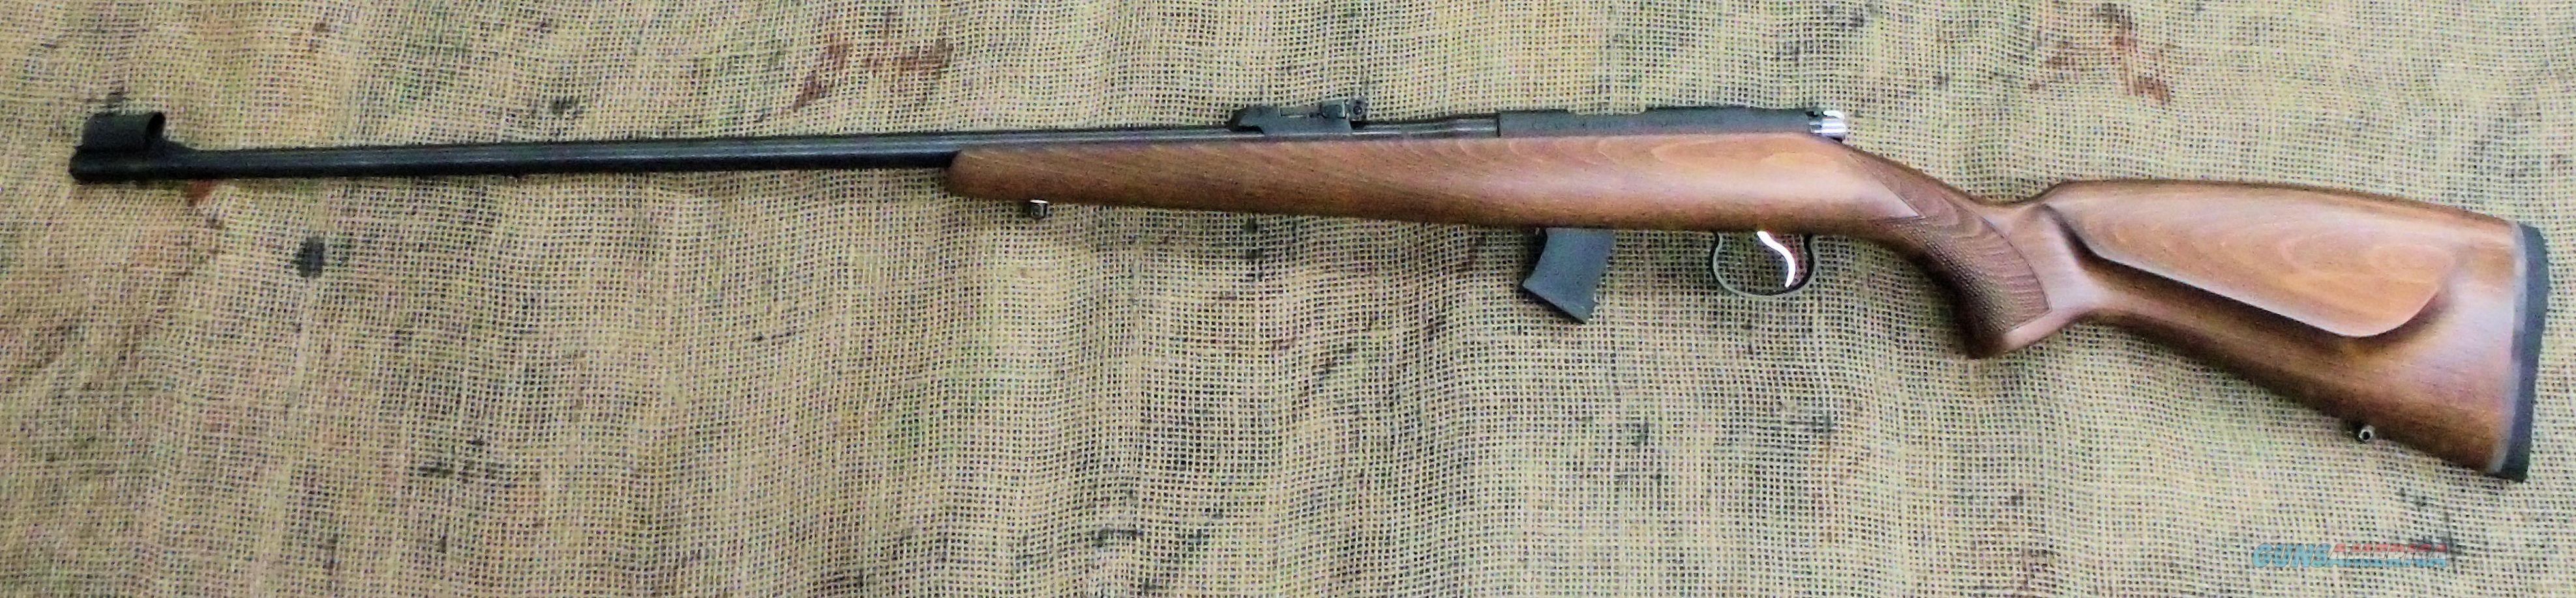 CZ Model 452 Rifle, .22LR Cal.  Guns > Rifles > CZ Rifles